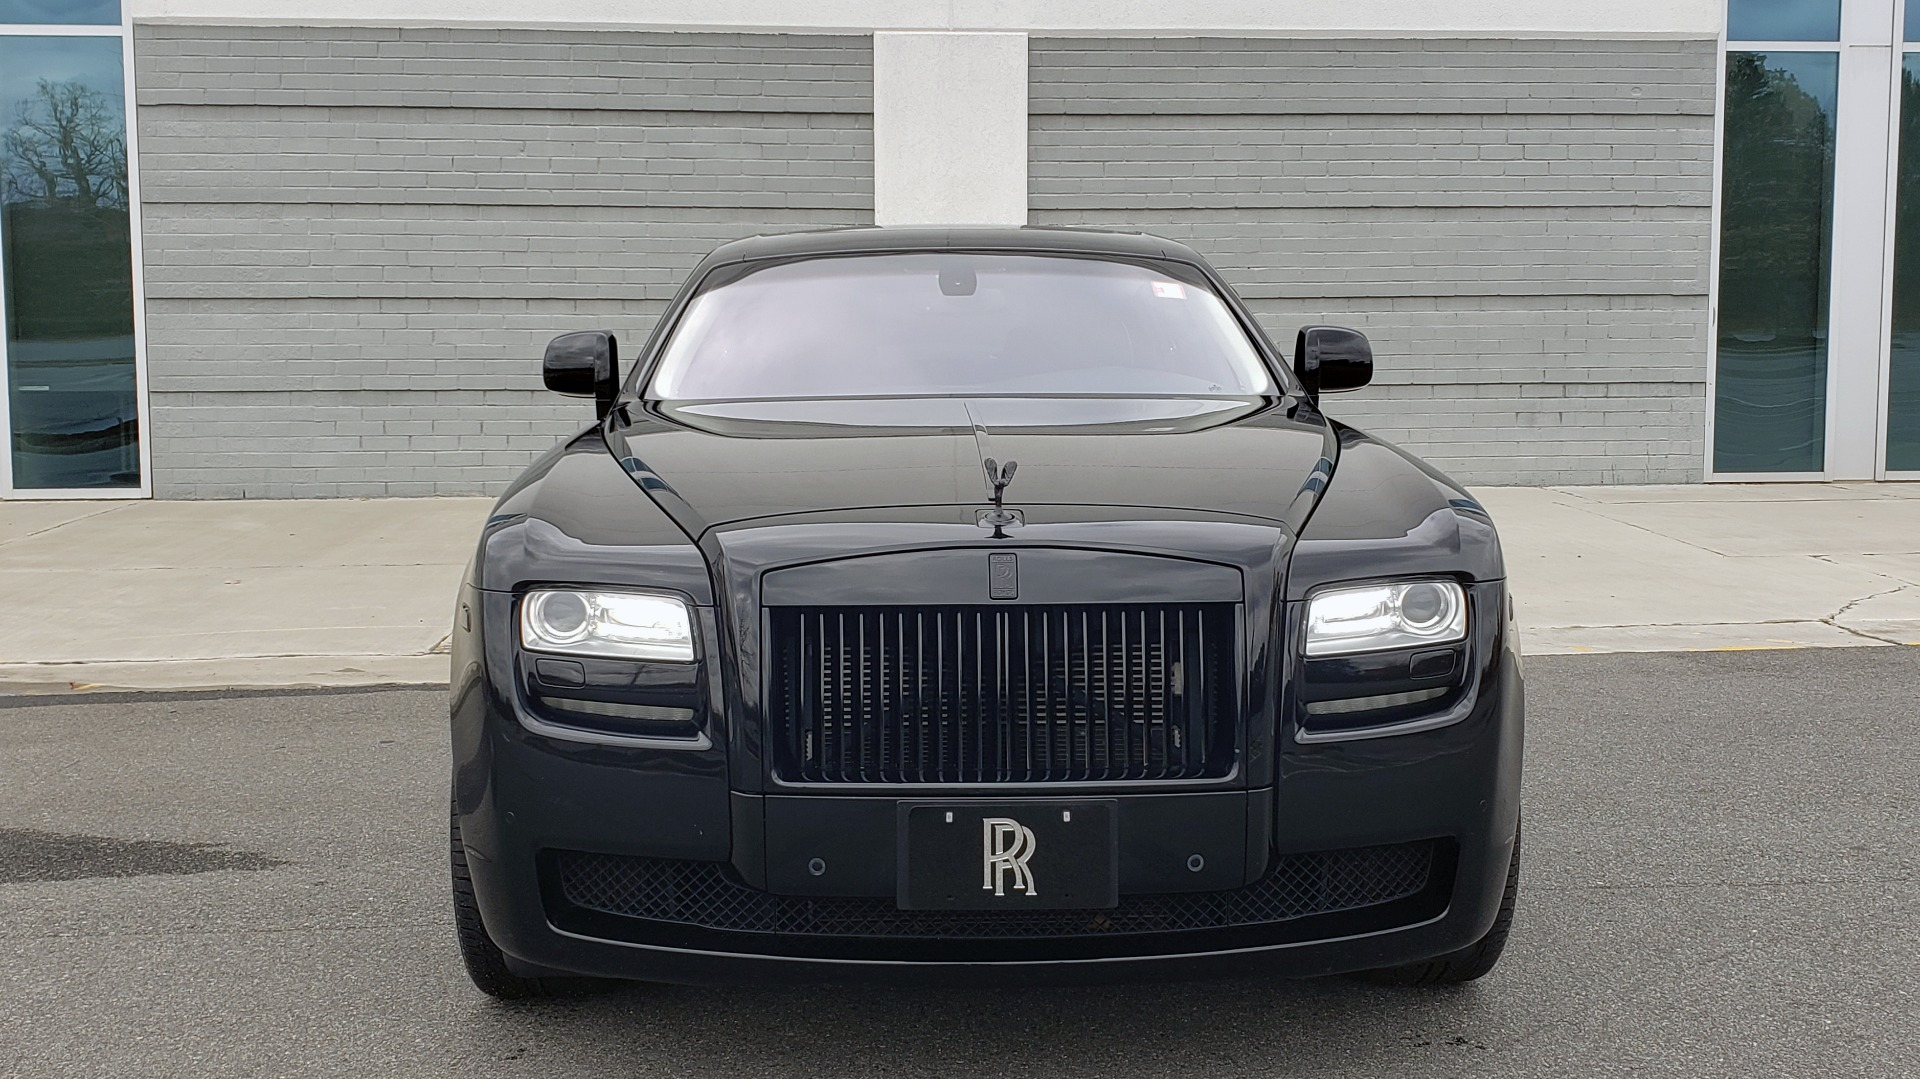 Used 2010 Rolls-Royce GHOST 6.6L TURBO V12 (563HP) / NAV / SUNROOF / SUICIDE DOORS for sale $89,000 at Formula Imports in Charlotte NC 28227 48